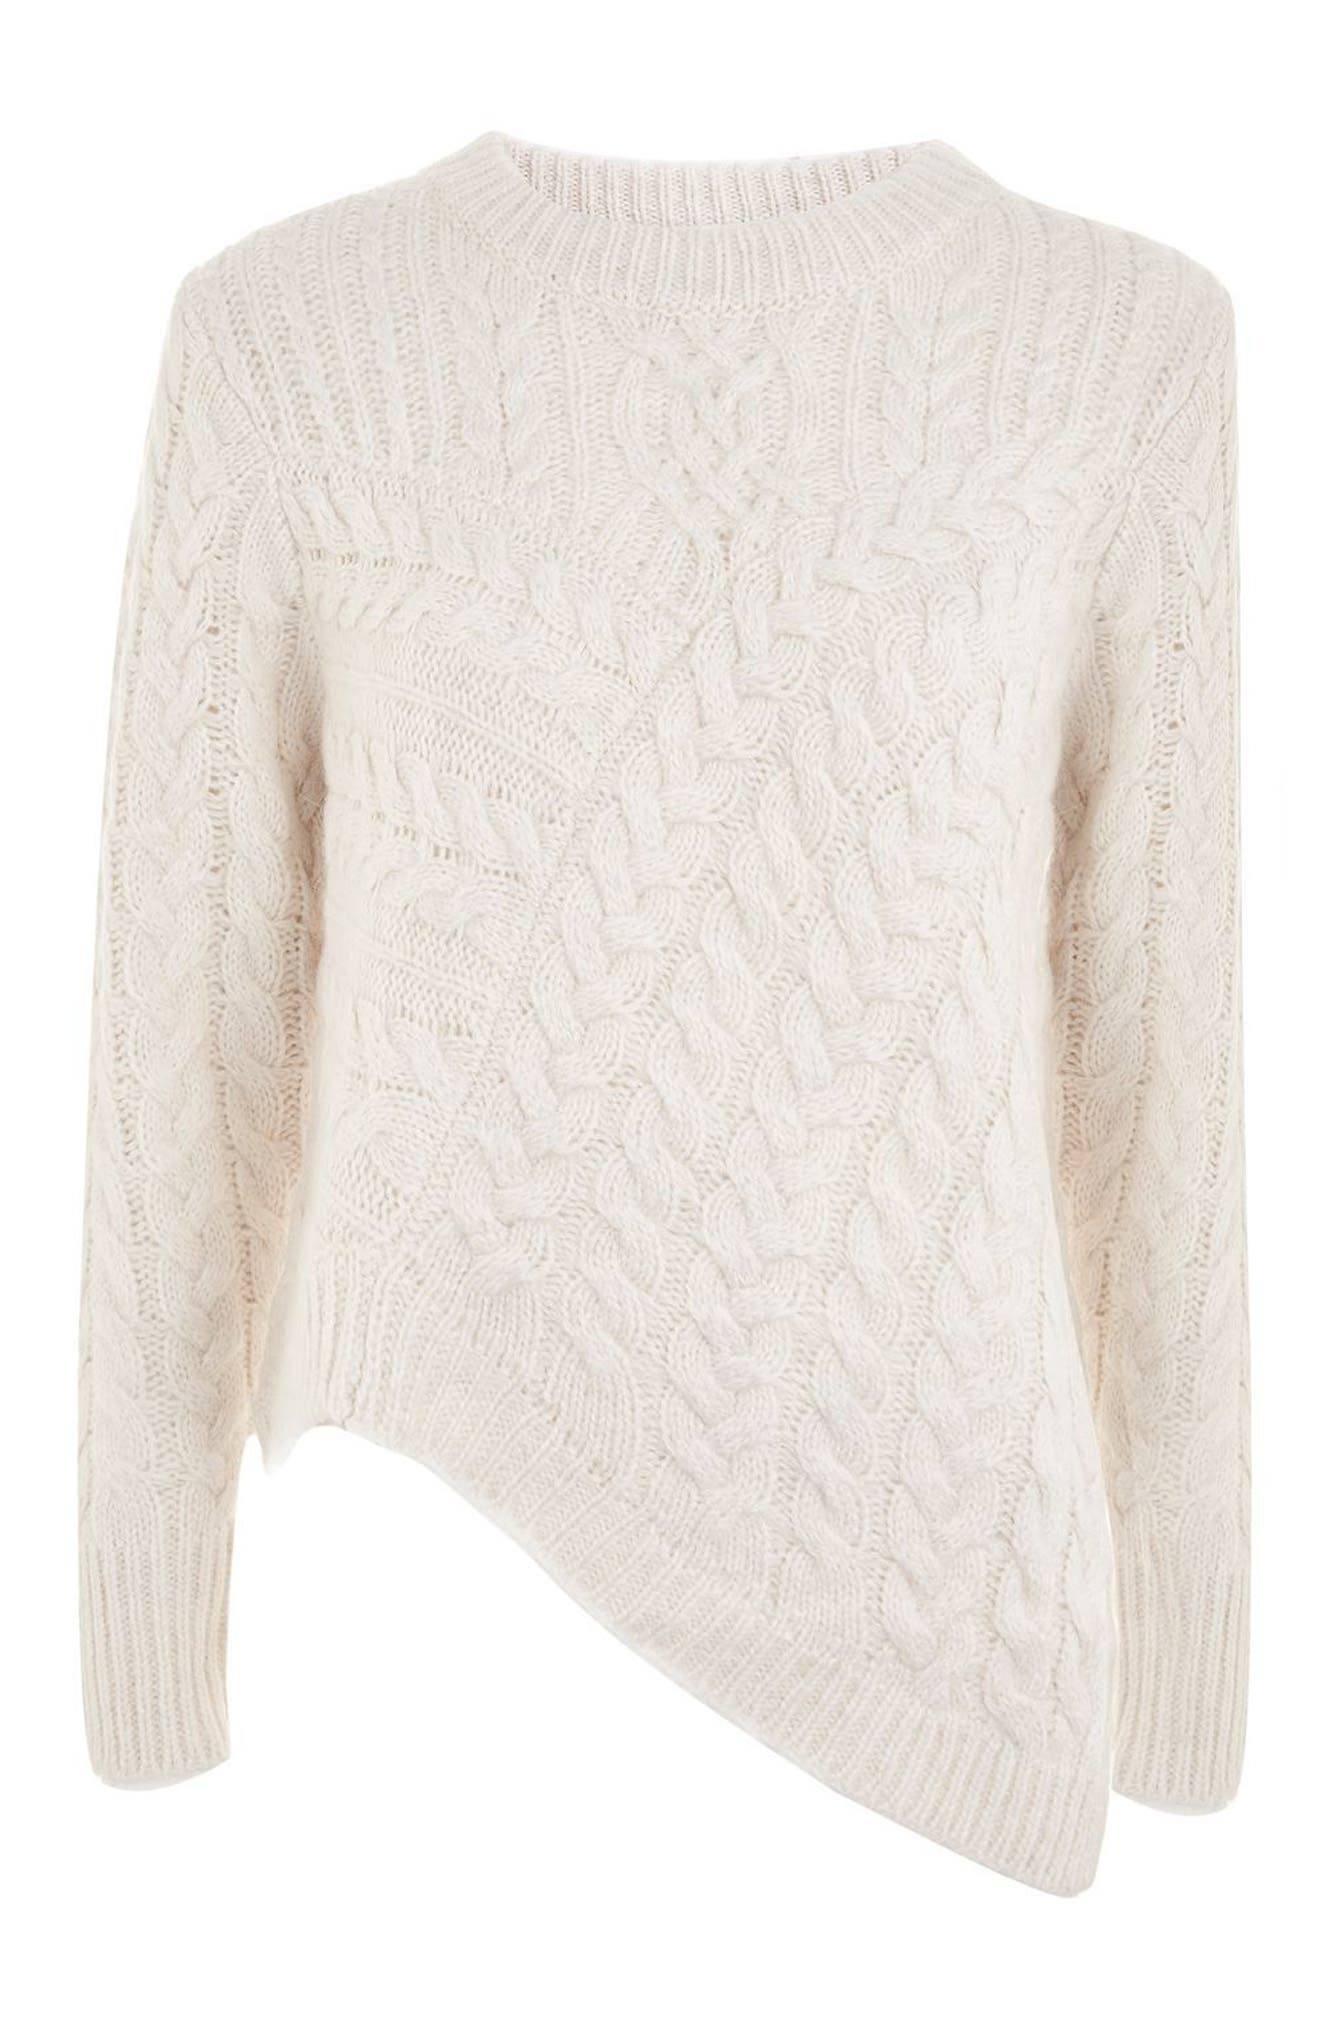 Asymmetrical Cable Knit Sweater,                             Alternate thumbnail 4, color,                             Oatmeal